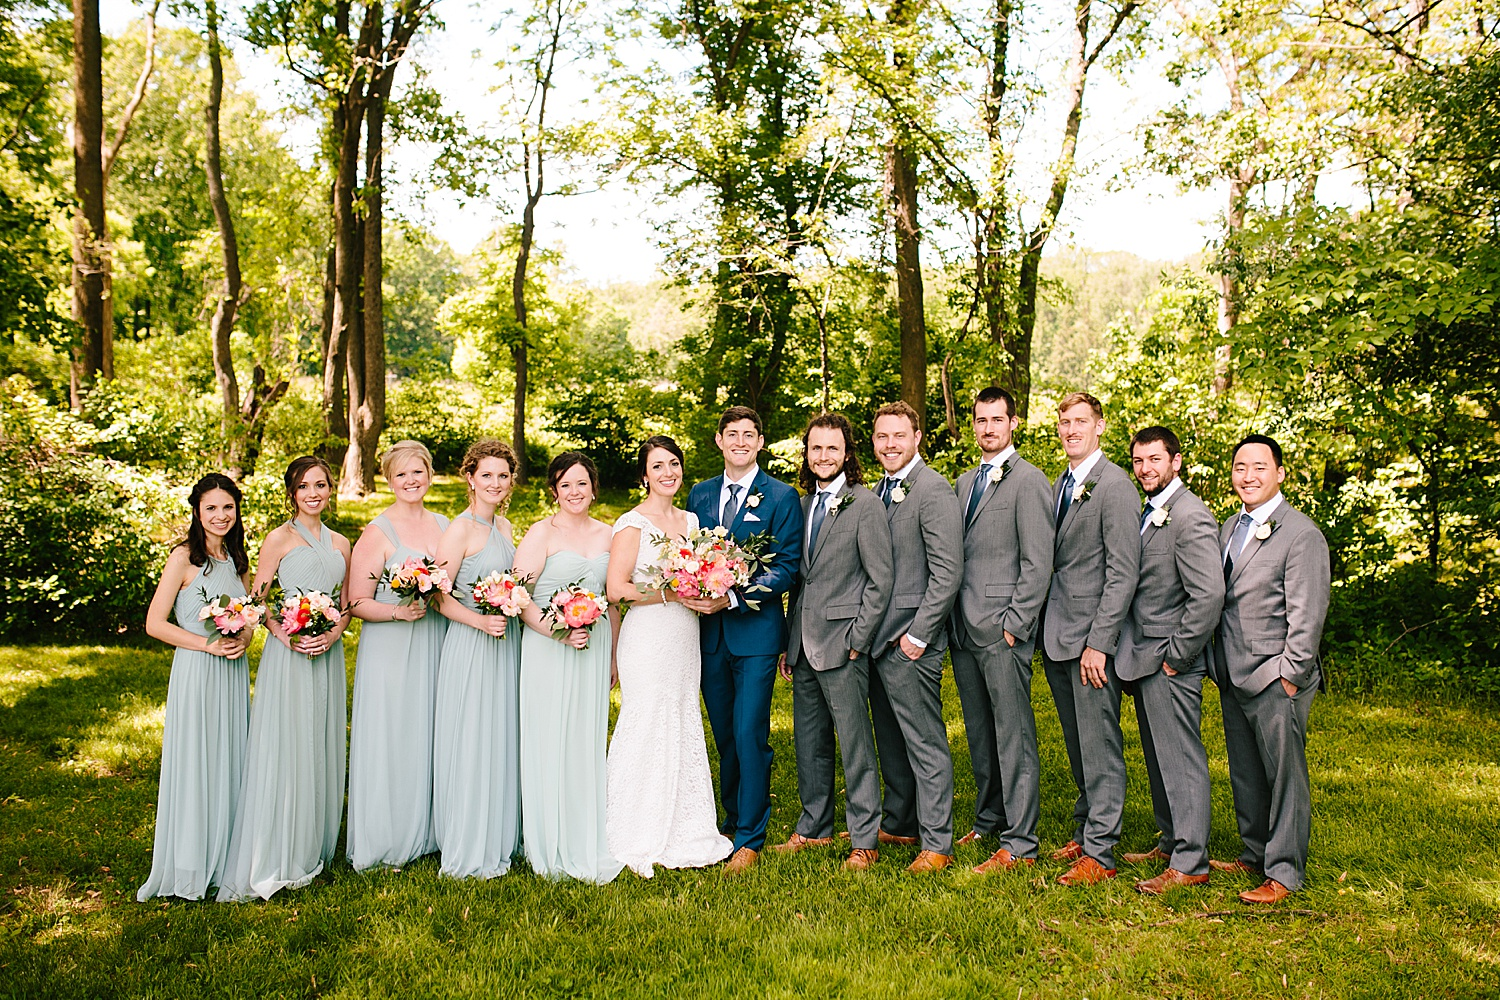 emilyaustin_rosebank_winery_newhope_farm_wedding_image047.jpg